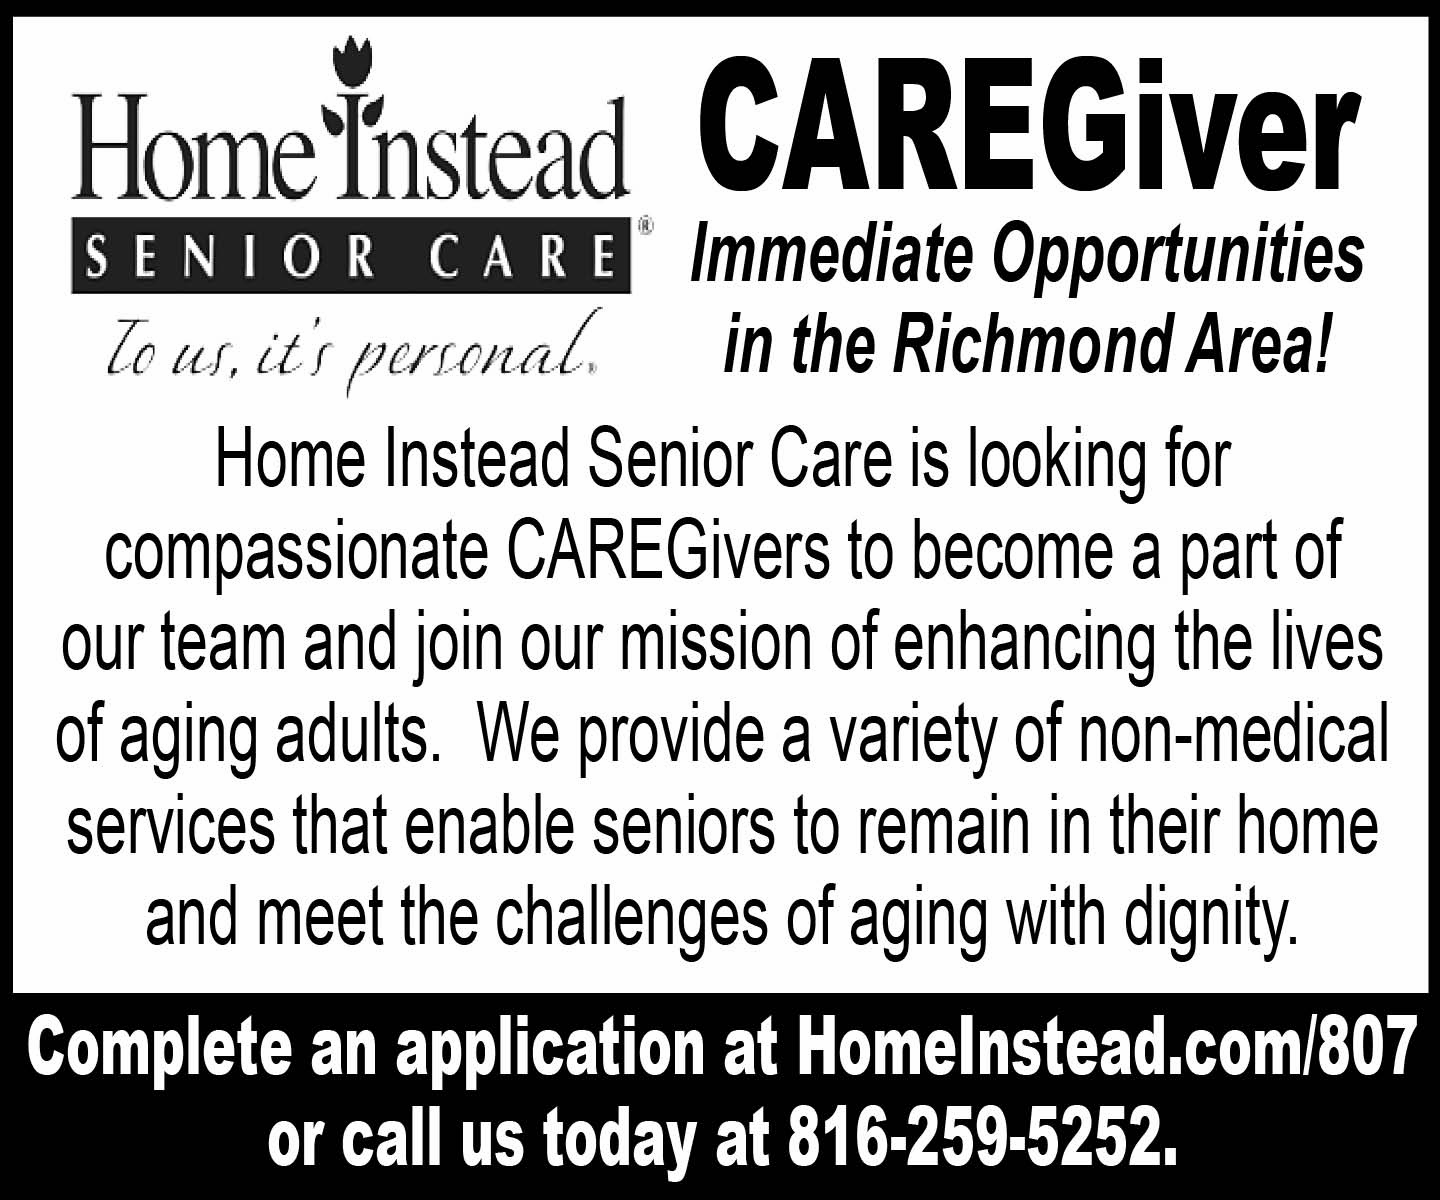 Care givers wanted